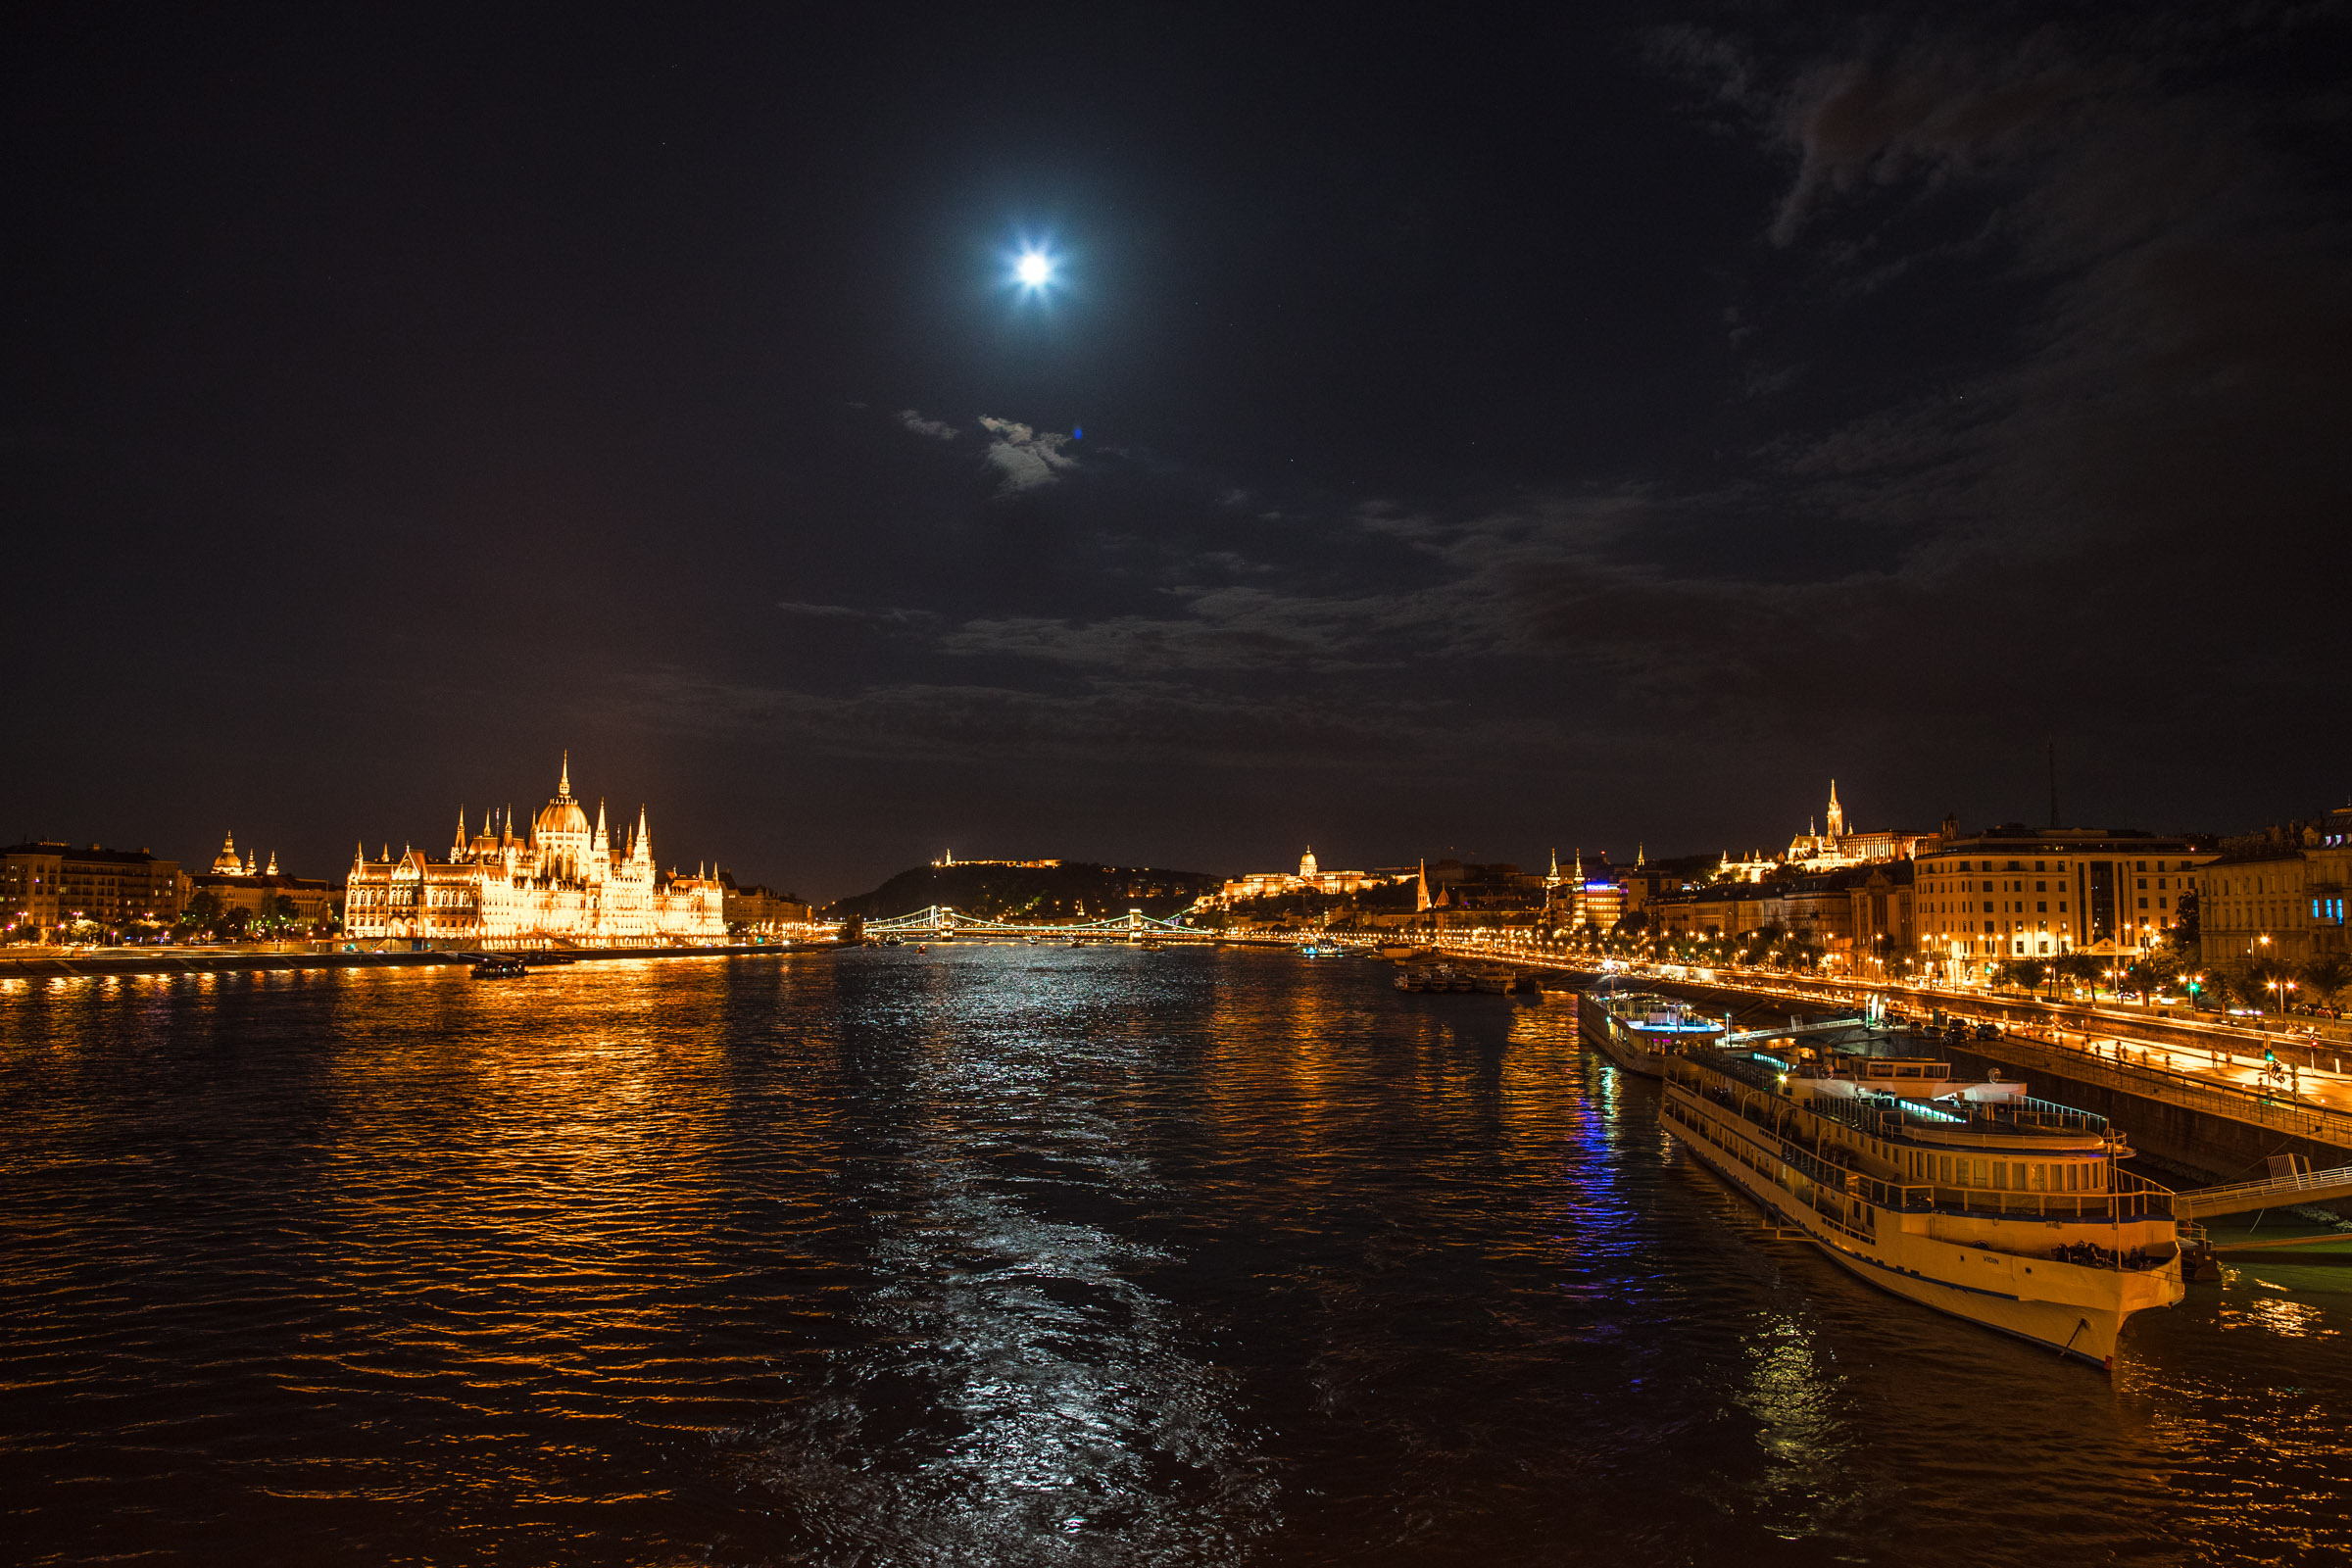 Moonrise over the Danube